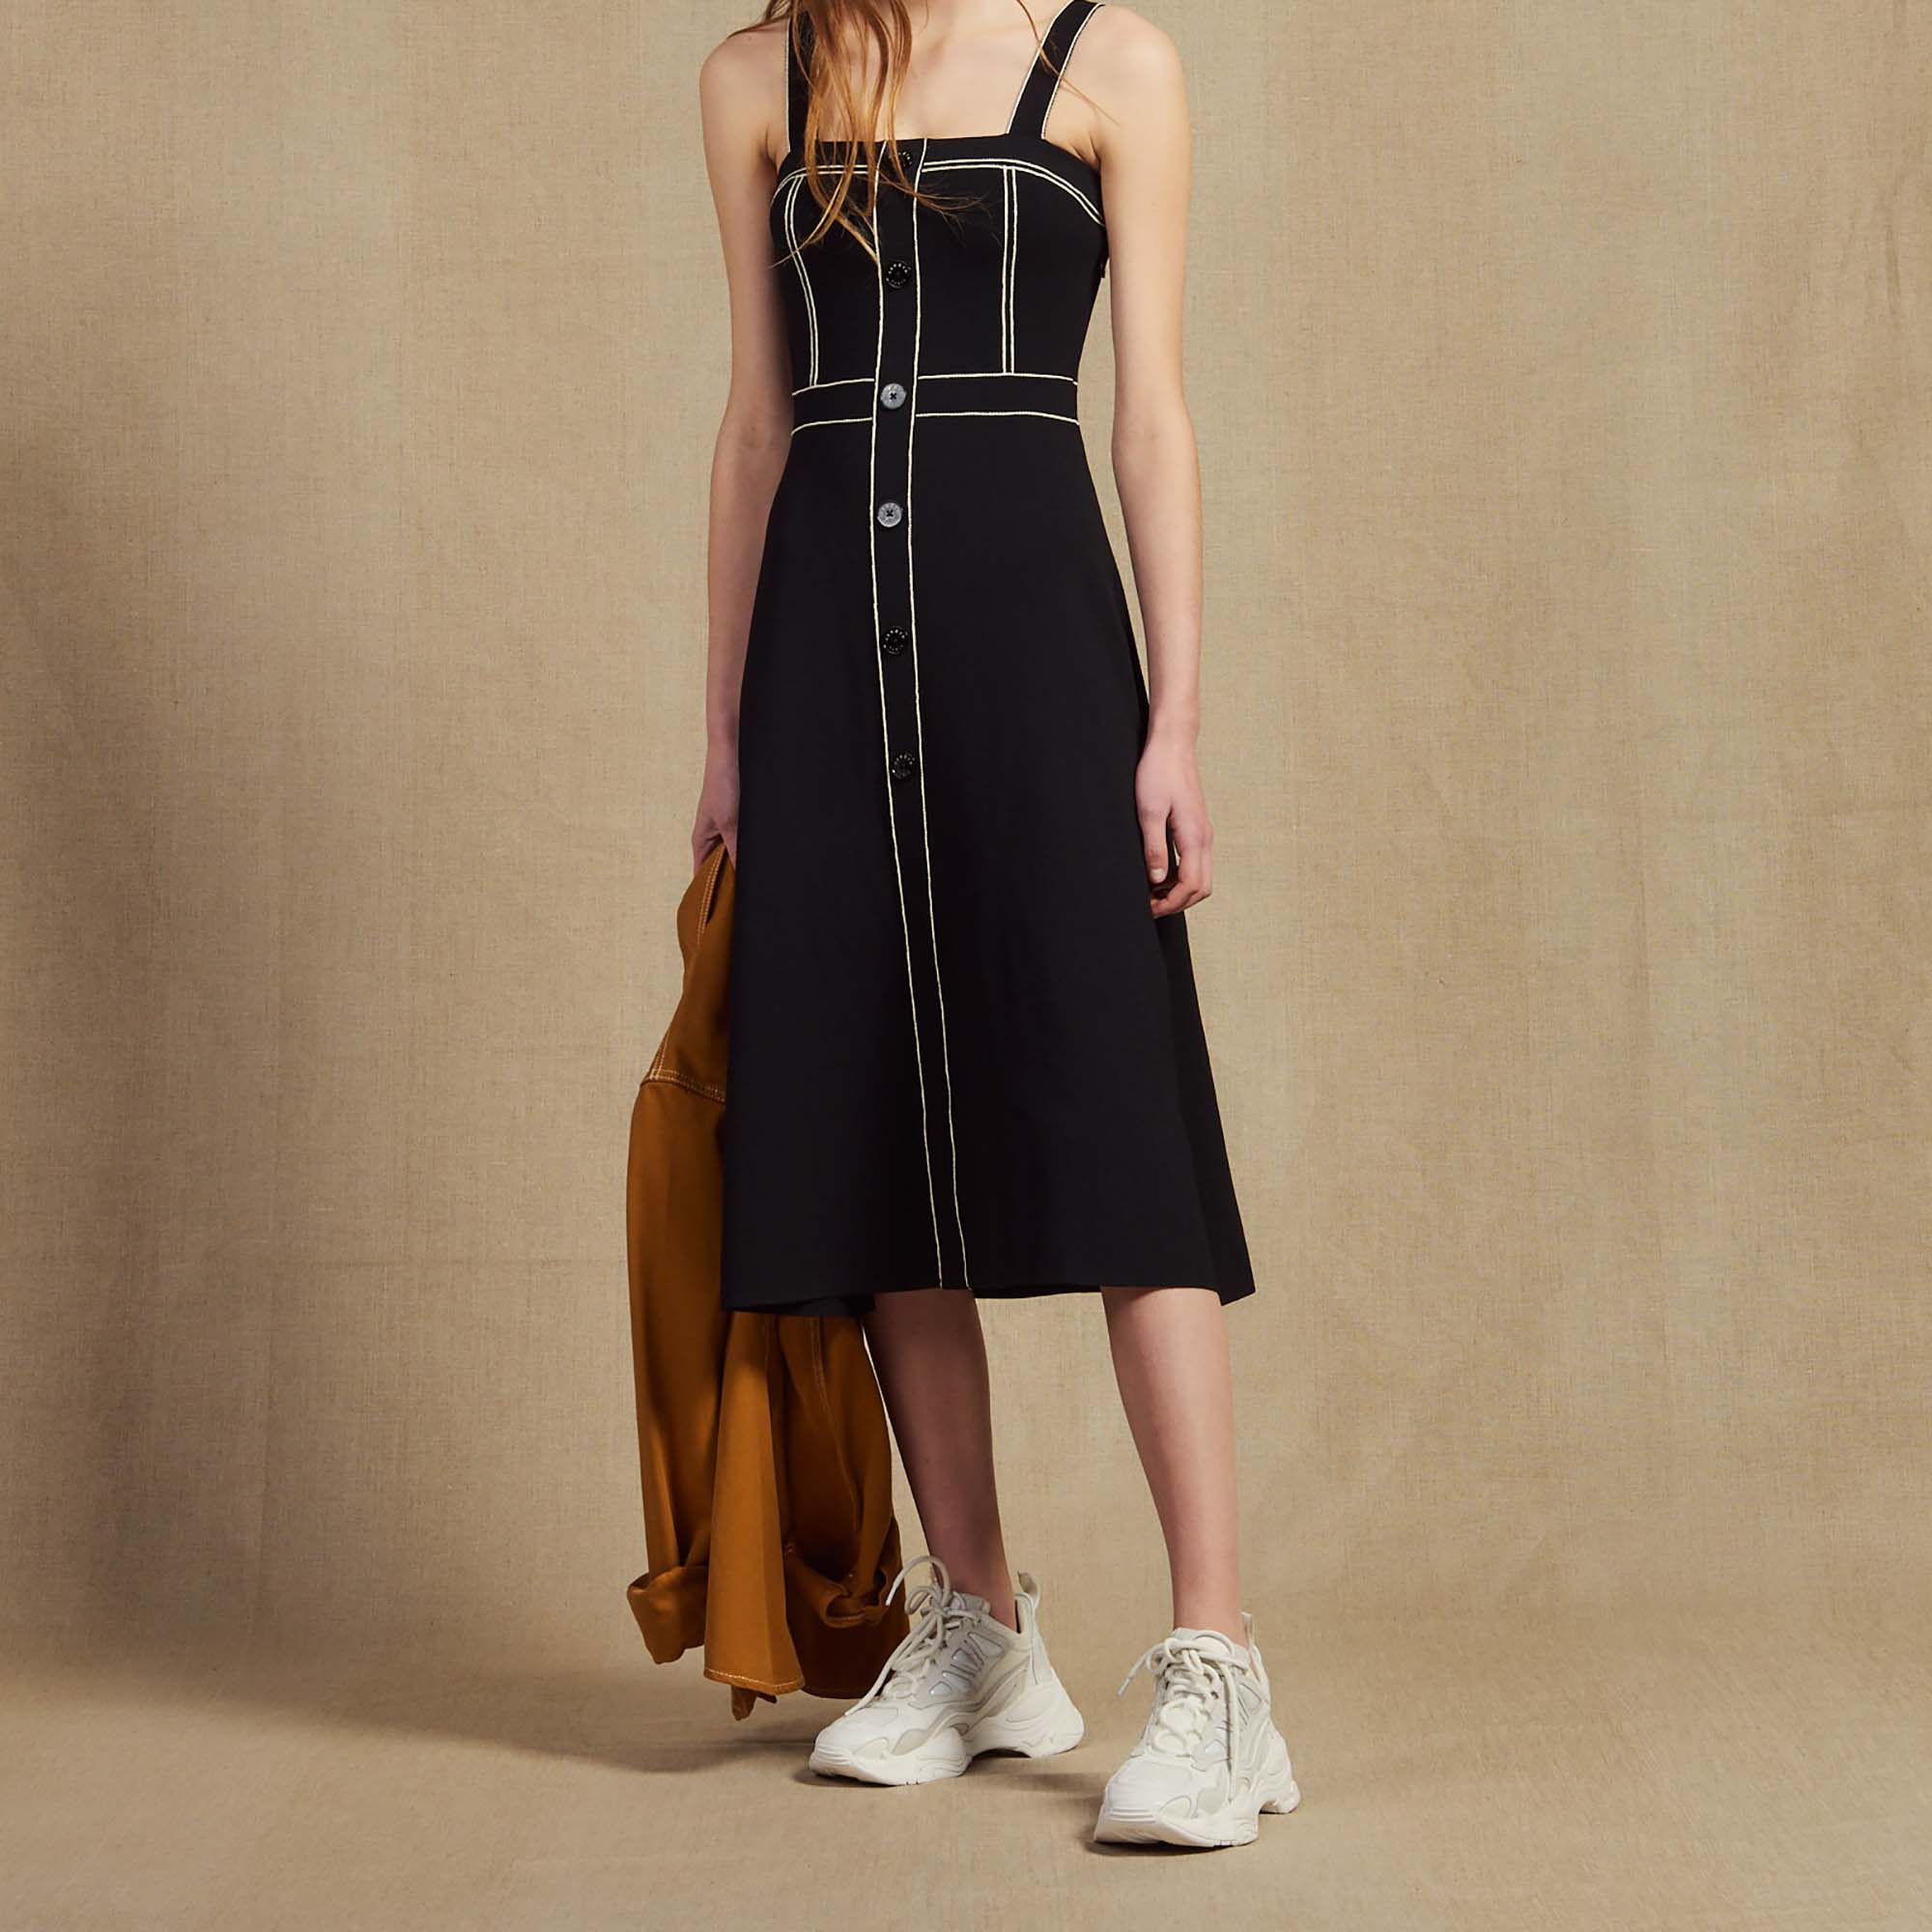 9307f547c95193 Knitted Midi Dress With Straps : Dresses color Black ...